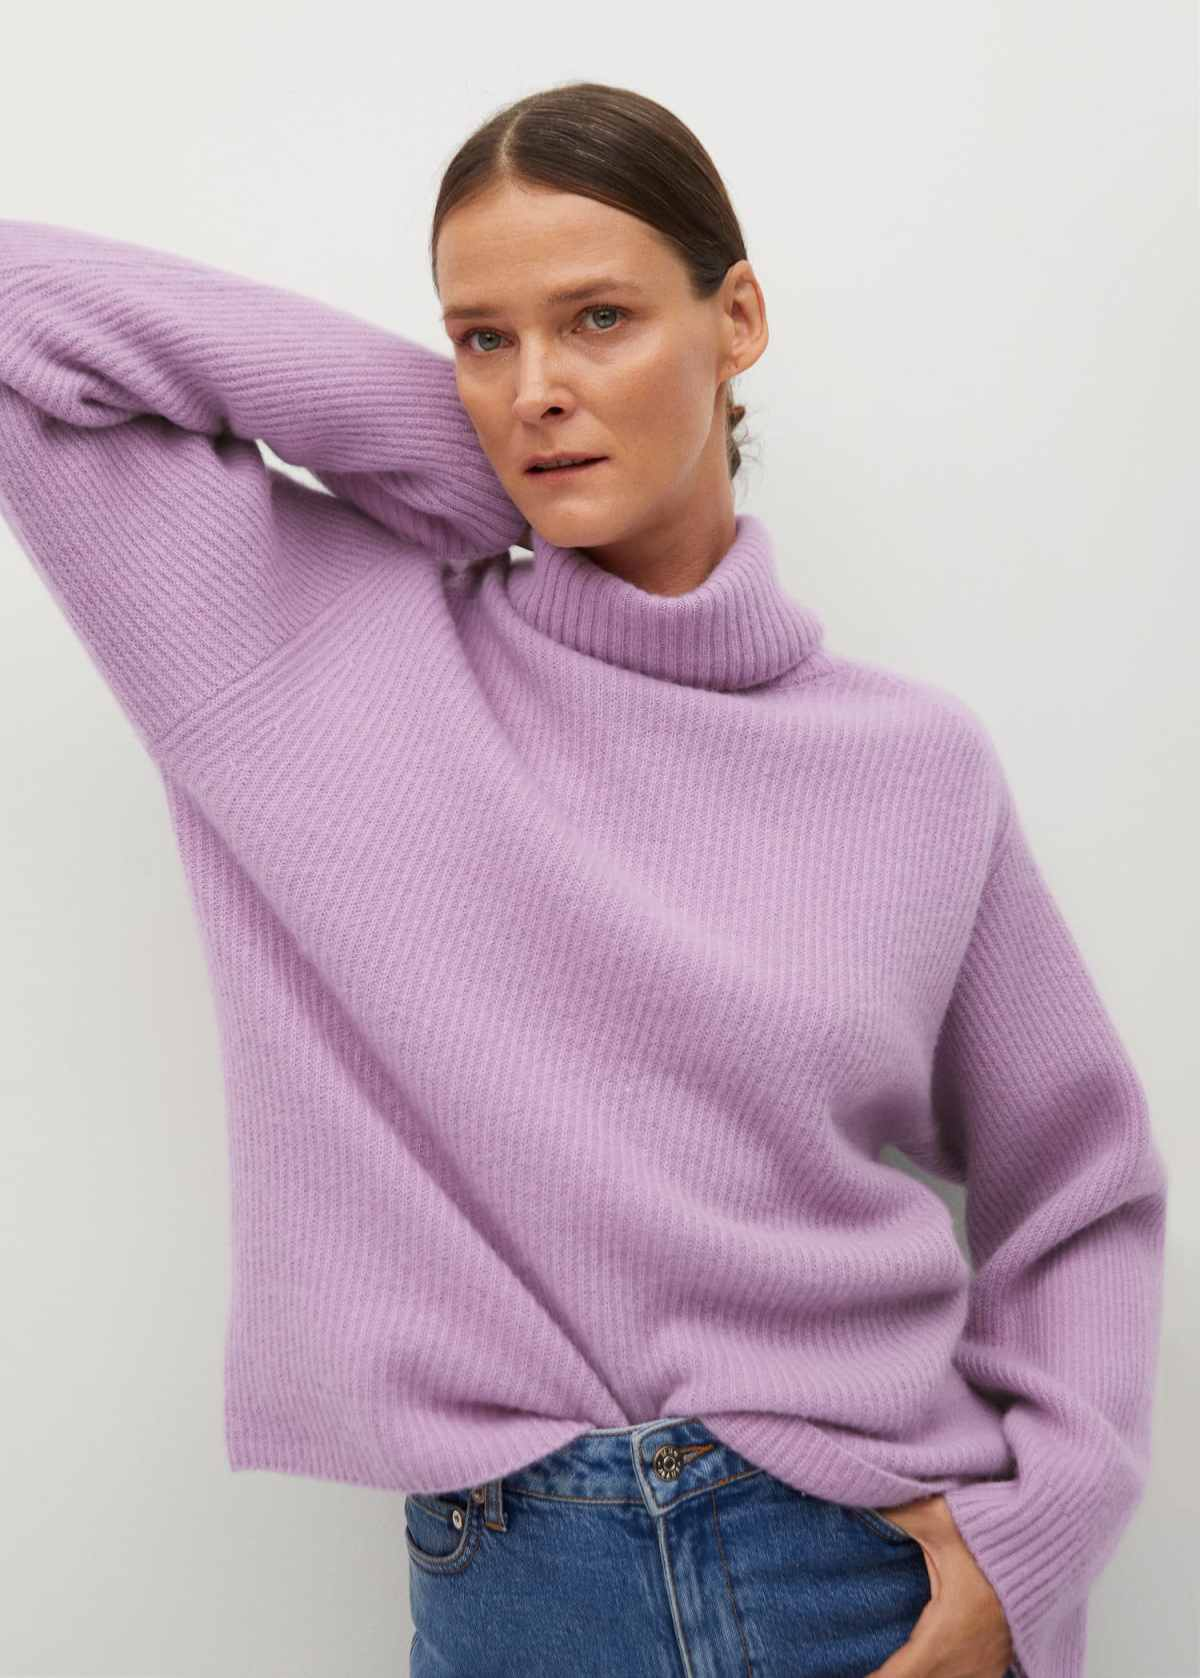 Ribbed cashmere sweater - Medium plane